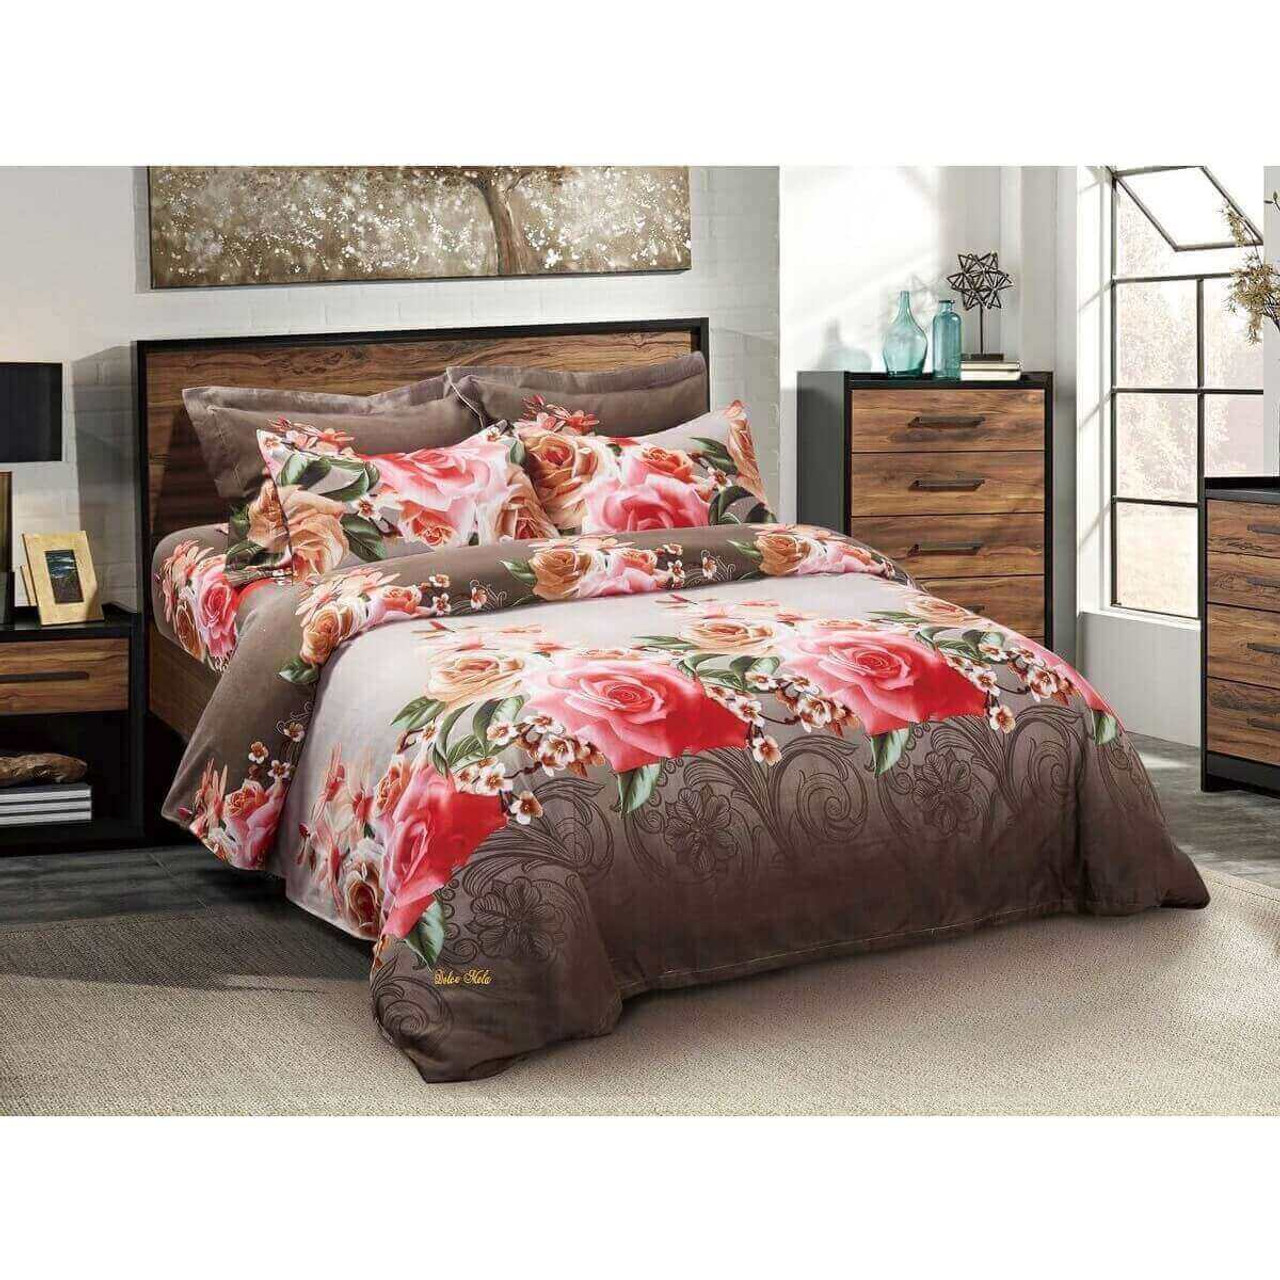 Drop-shipping Wholesale Bedding Sets DM708K